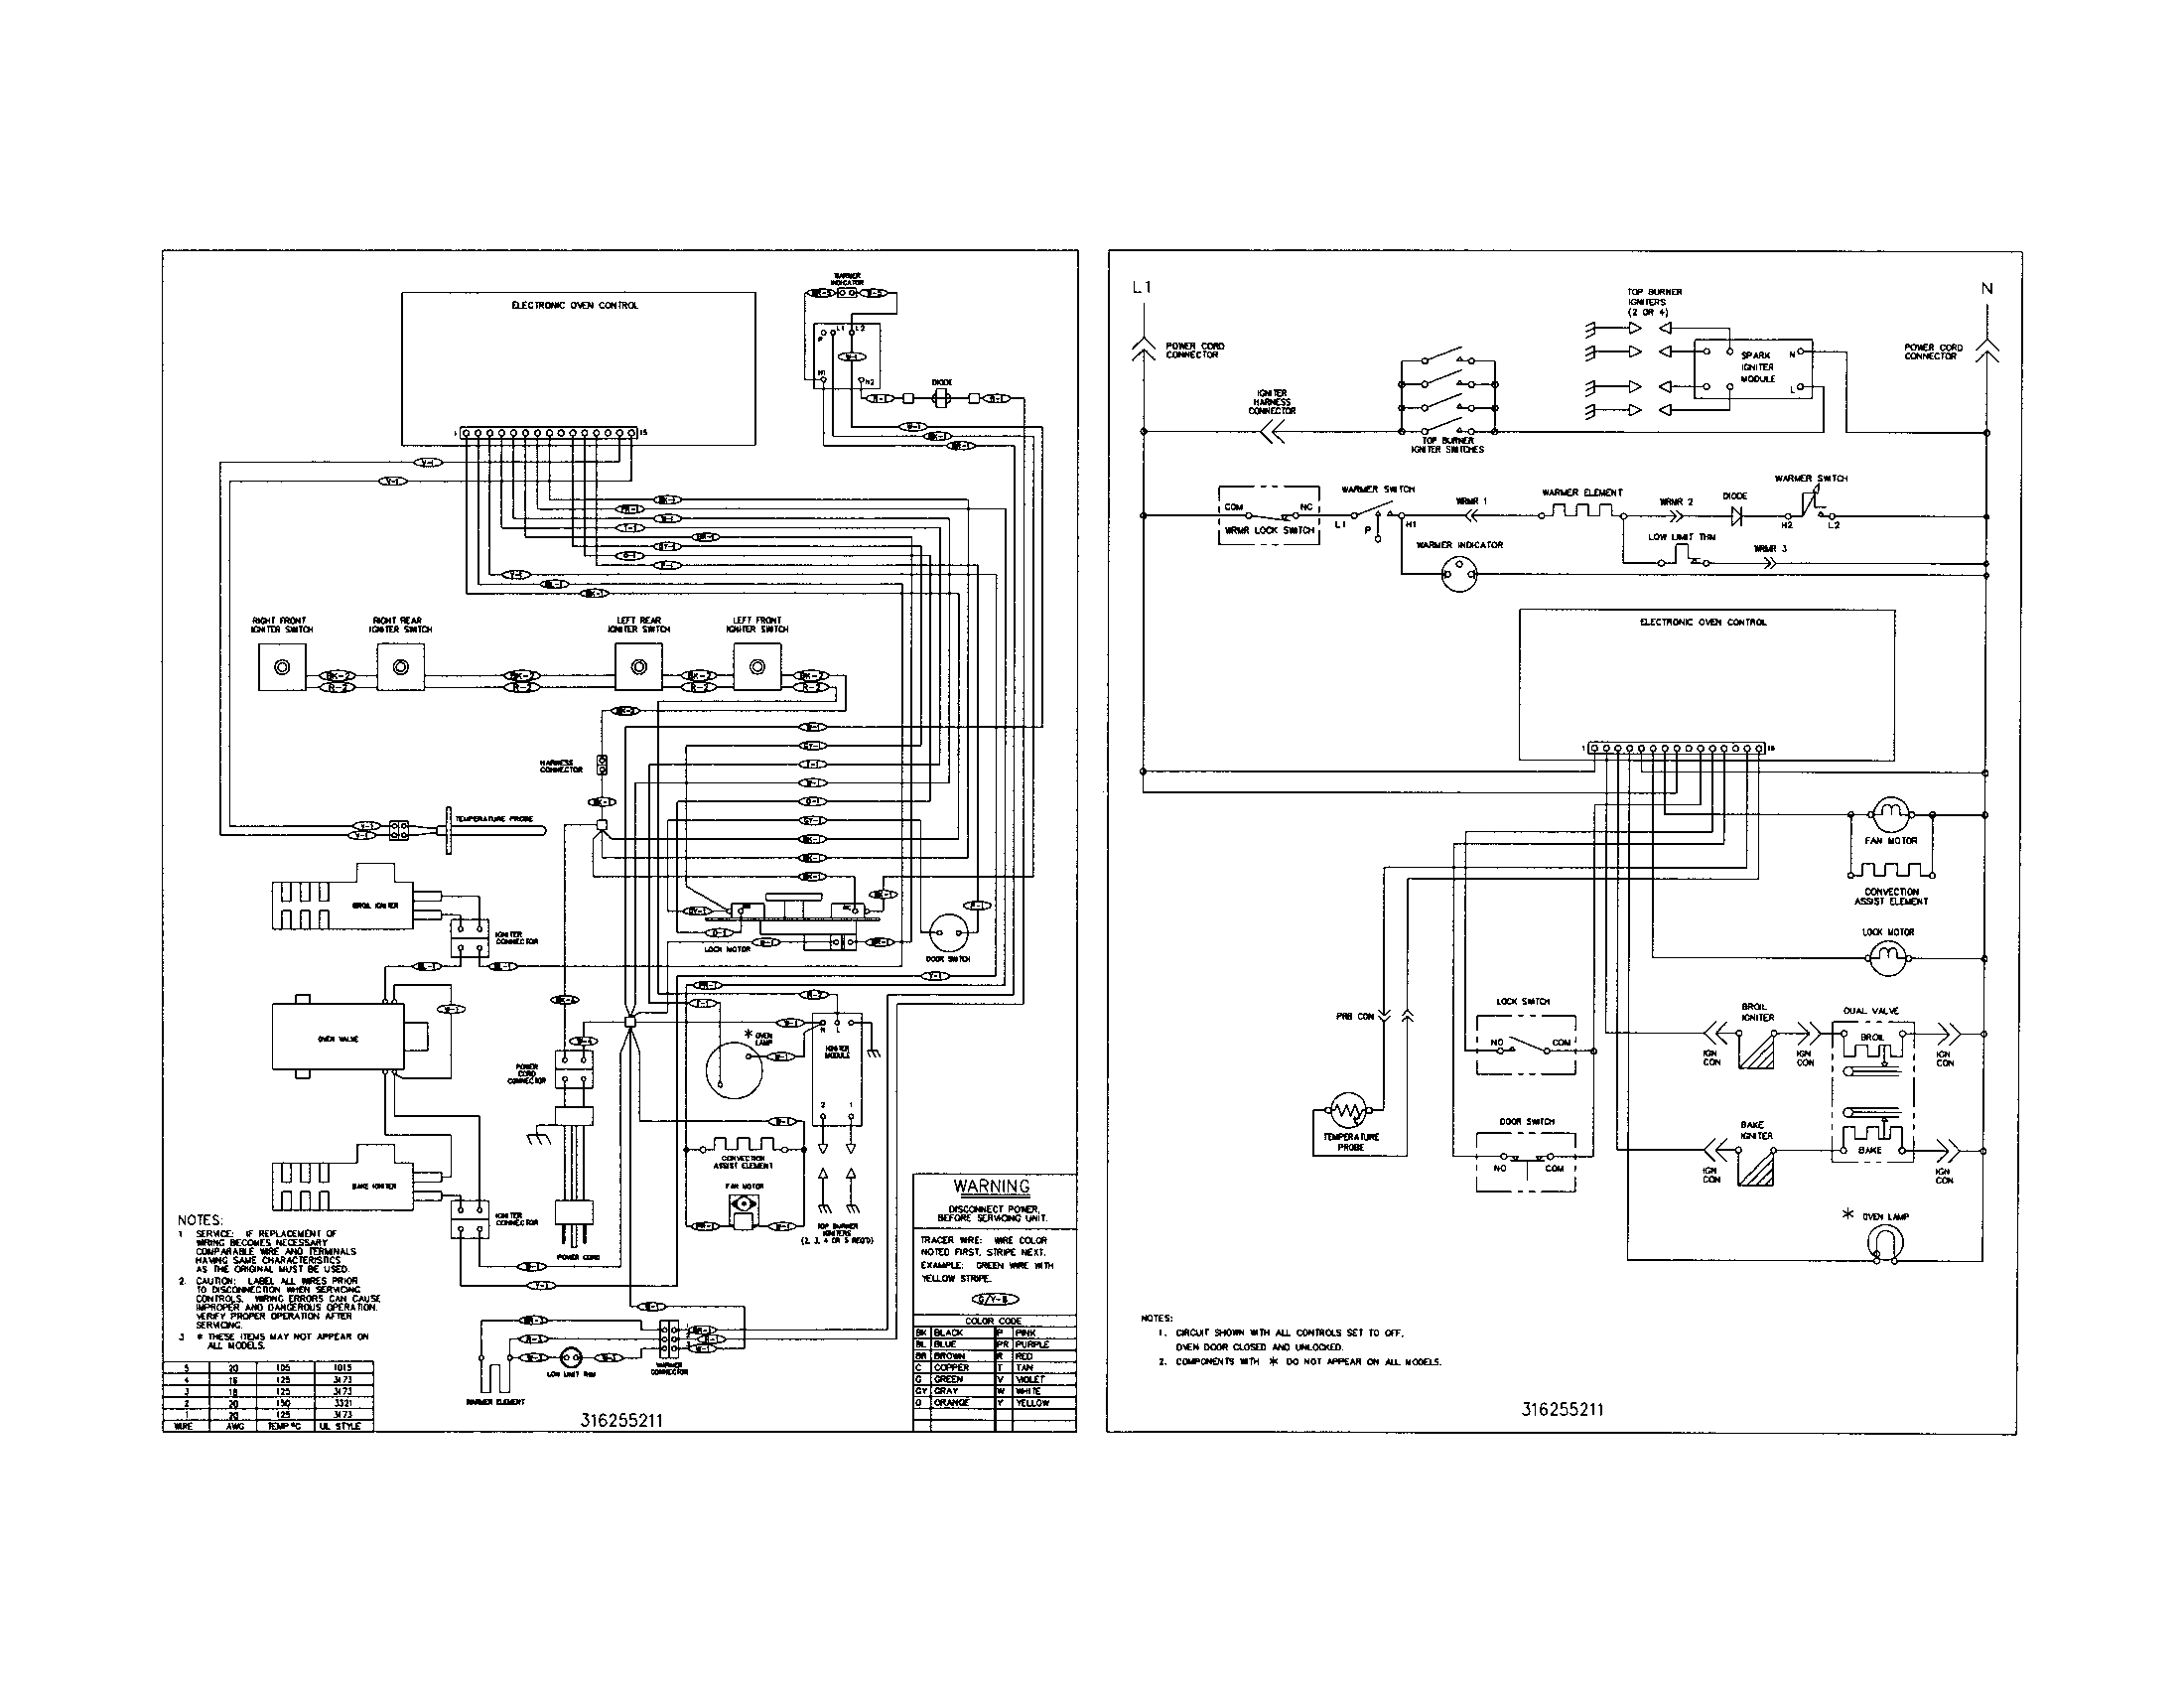 wiring schematic parts wiring diagram electrolux wiring diagrams instruction frigidaire gallery refrigerator wiring diagram at webbmarketing.co